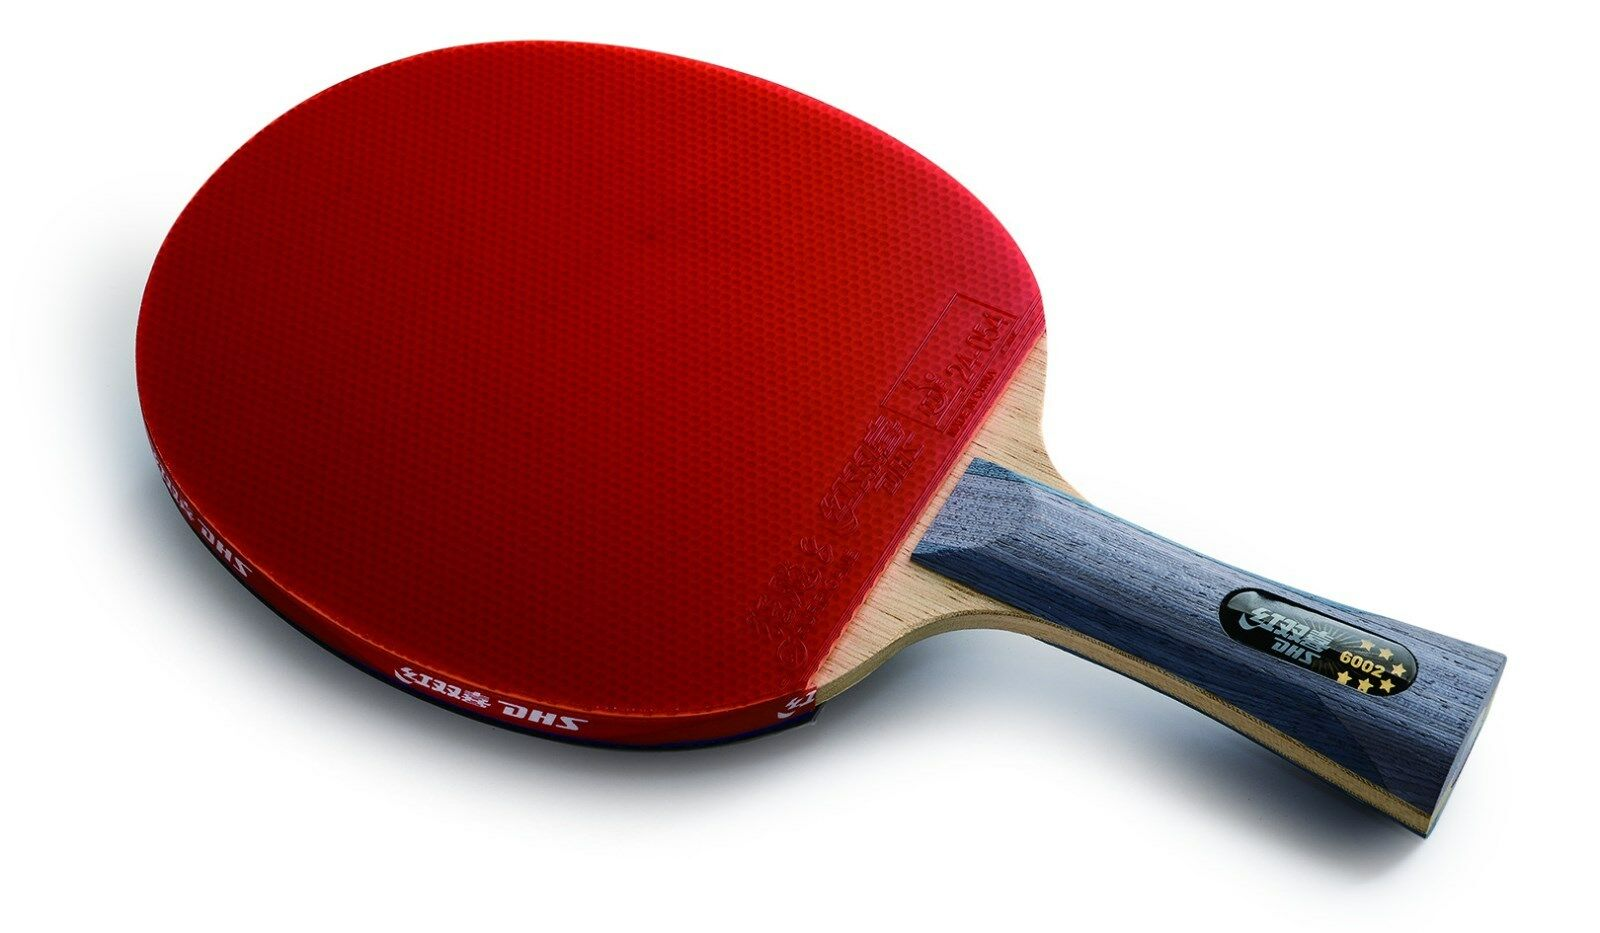 Genuine DHS R6002   R6006 Table Tennis Paddle w Case, New USD